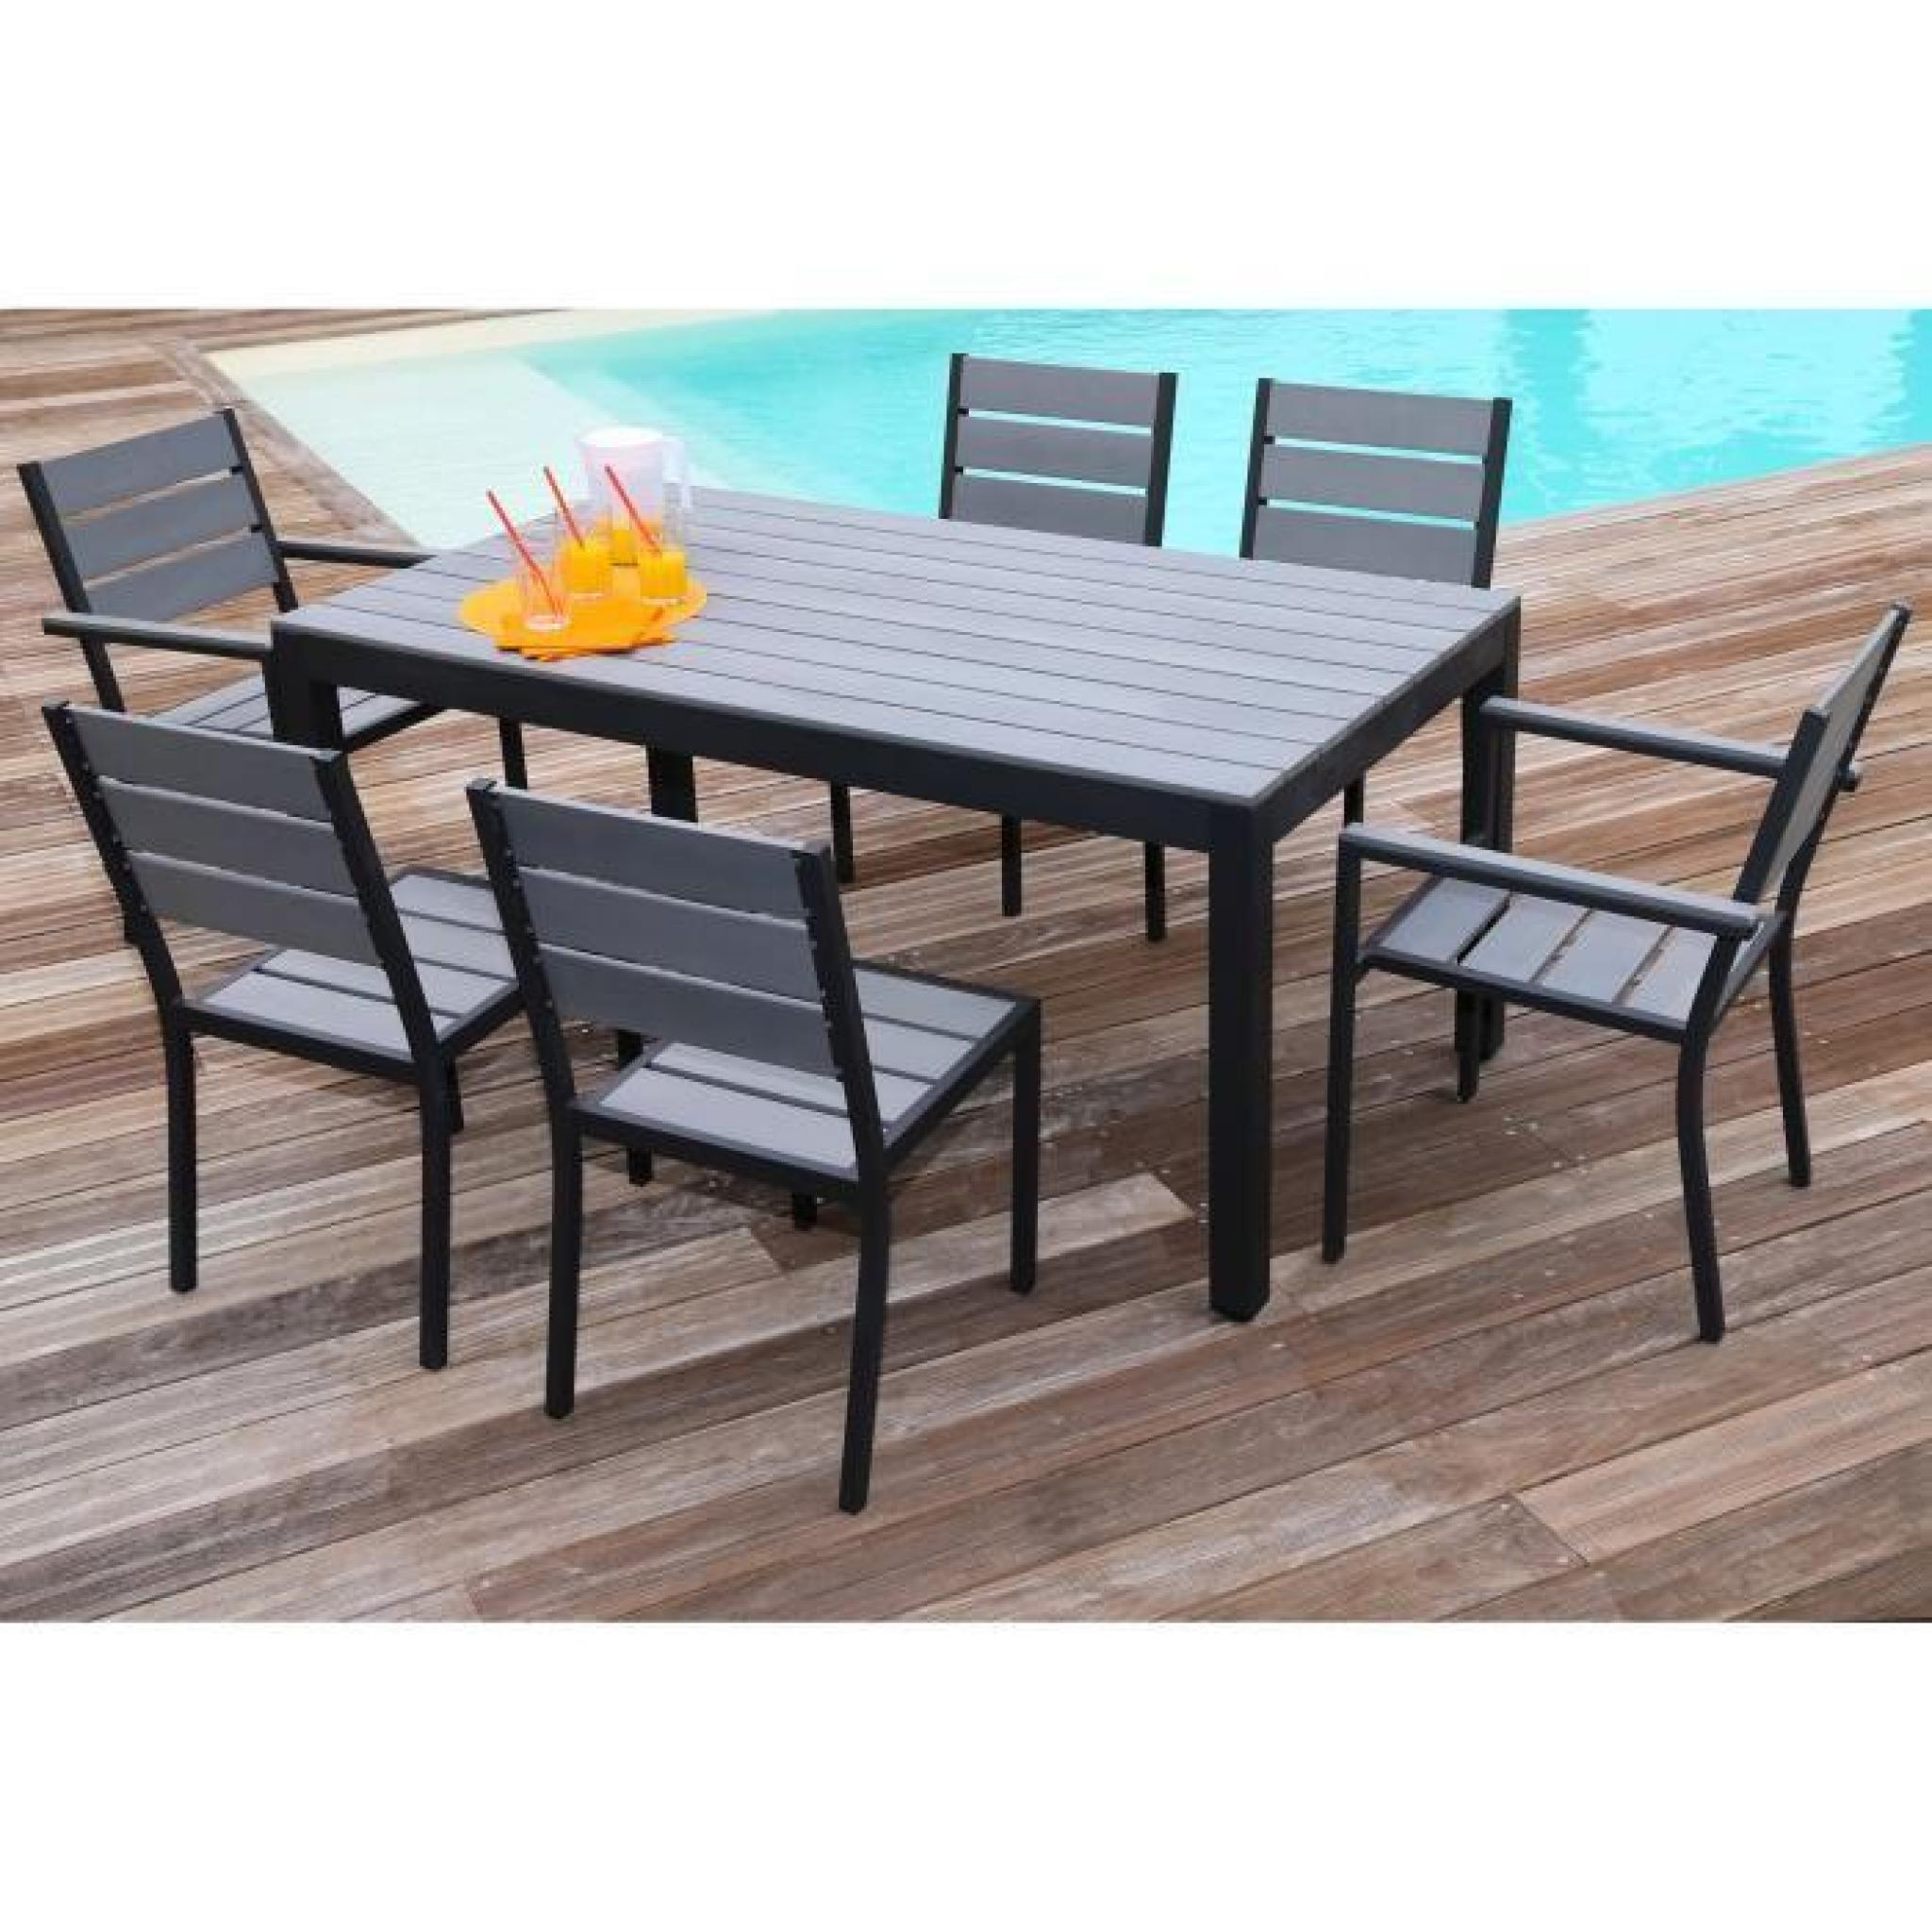 floride ensemble table de jardin 160 cm 2 fauteuils 4. Black Bedroom Furniture Sets. Home Design Ideas